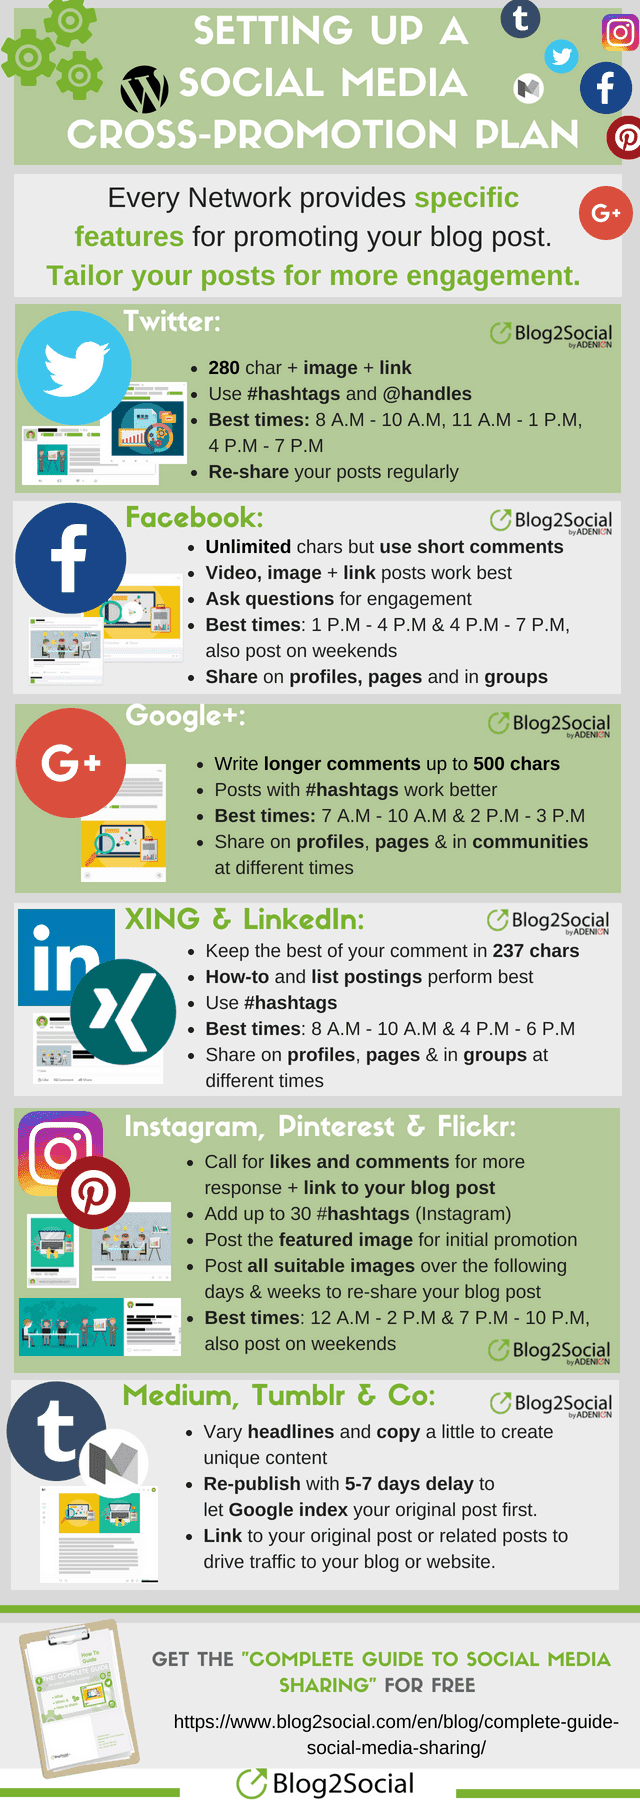 Learn more about social media cross-promotion in this infographic.